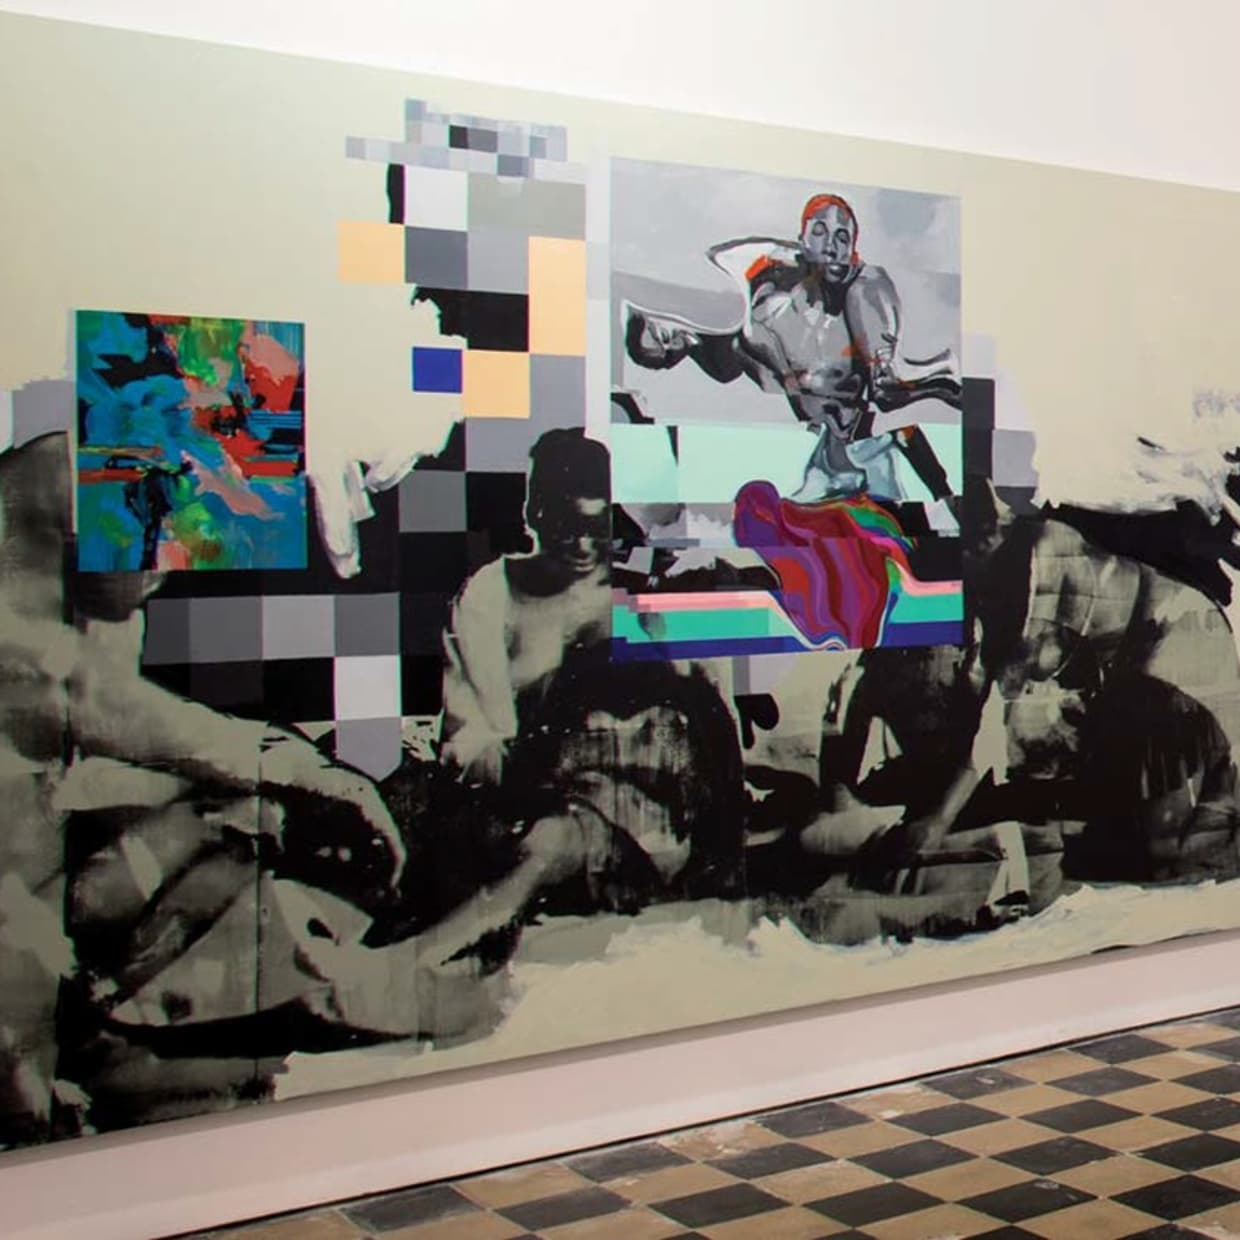 Diptyk 'In Venice, a contrasting African presence'